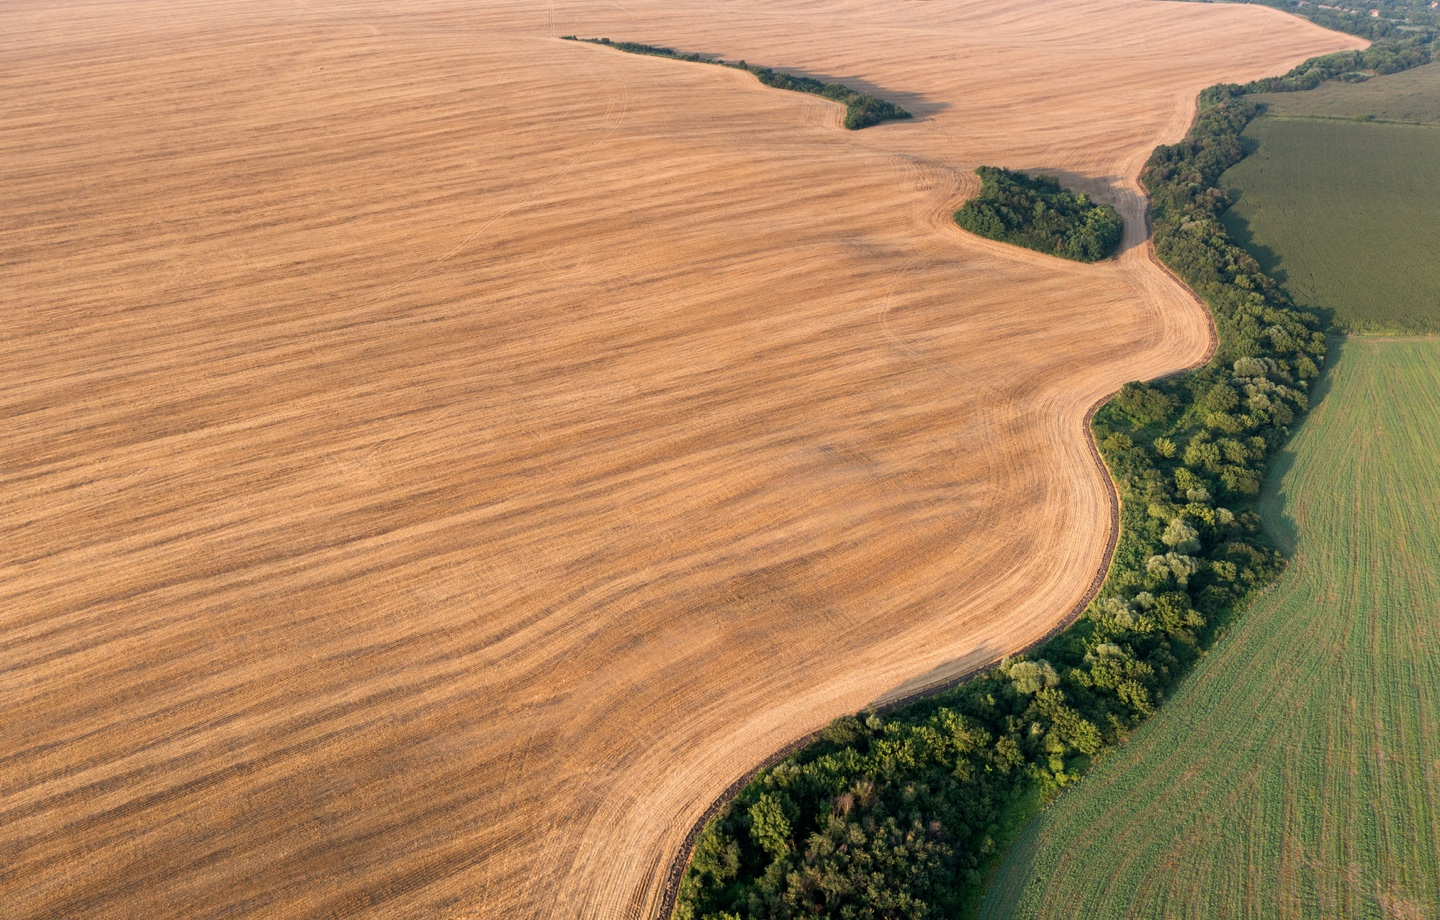 Aerial Shot of Cultivated Agriculture Fields Header